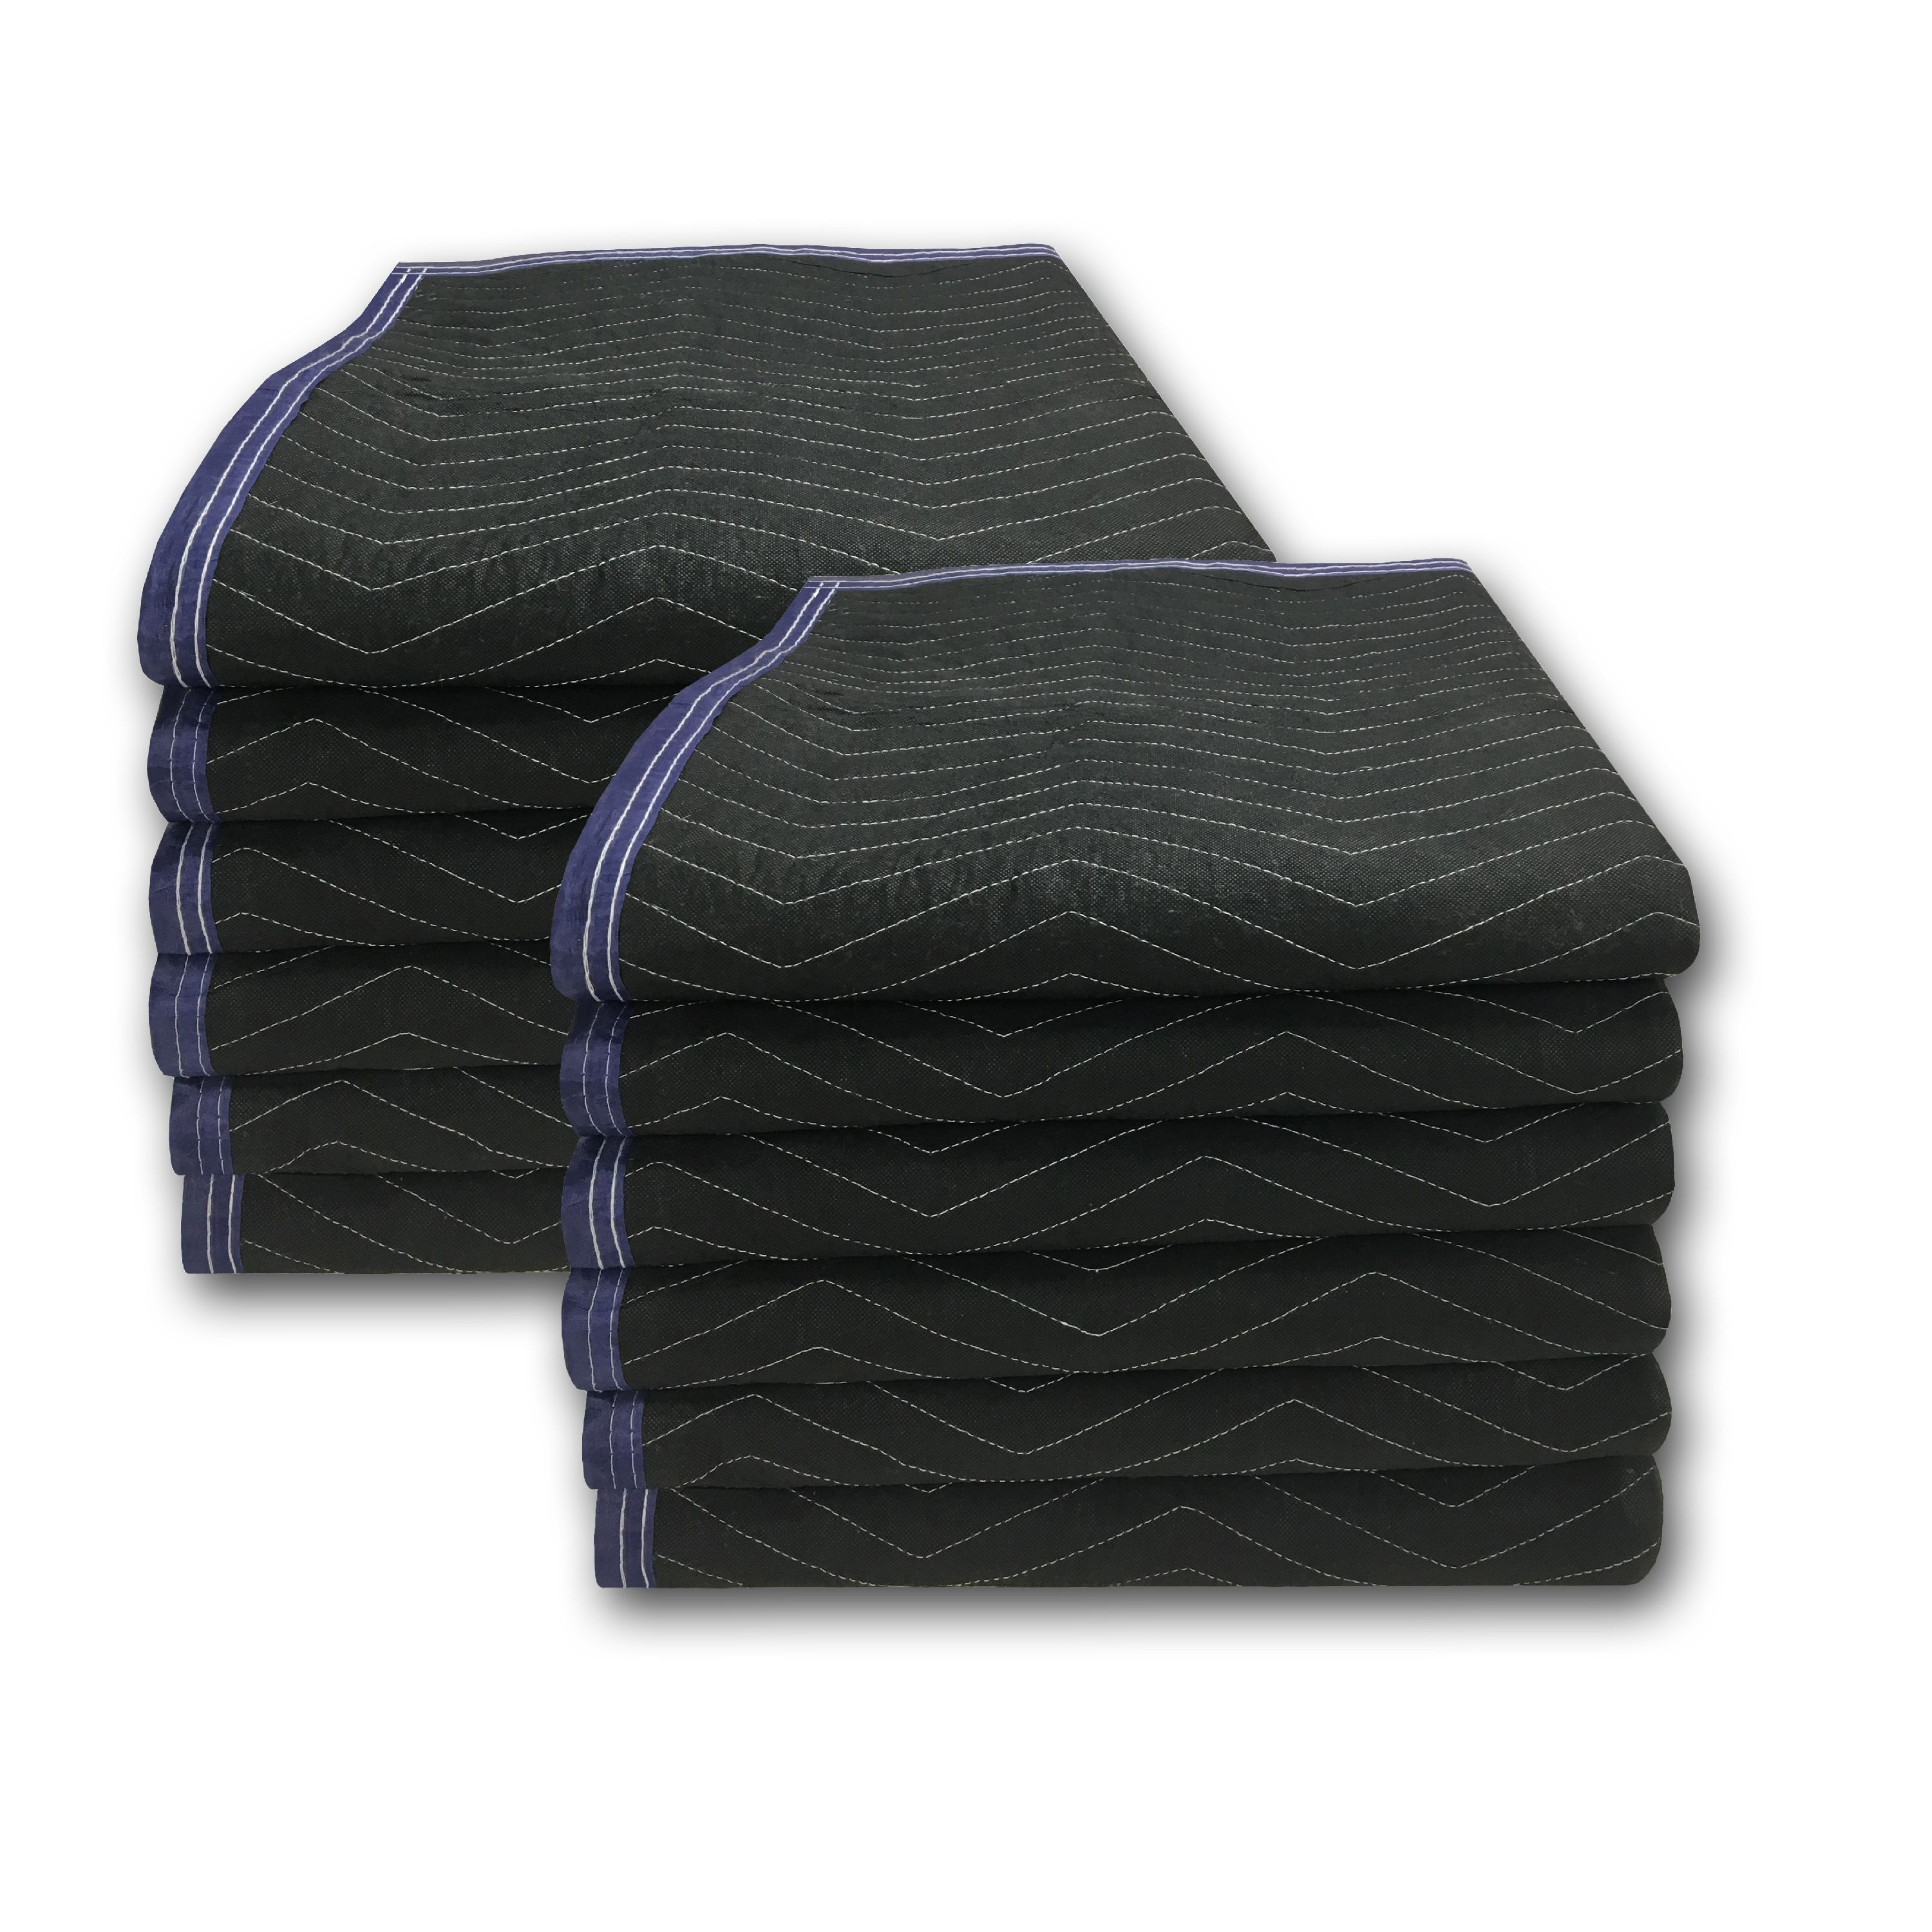 Uboxes Performance Moving Blankets, 72 x 80 in, 4.5lbs each, 48 Pack